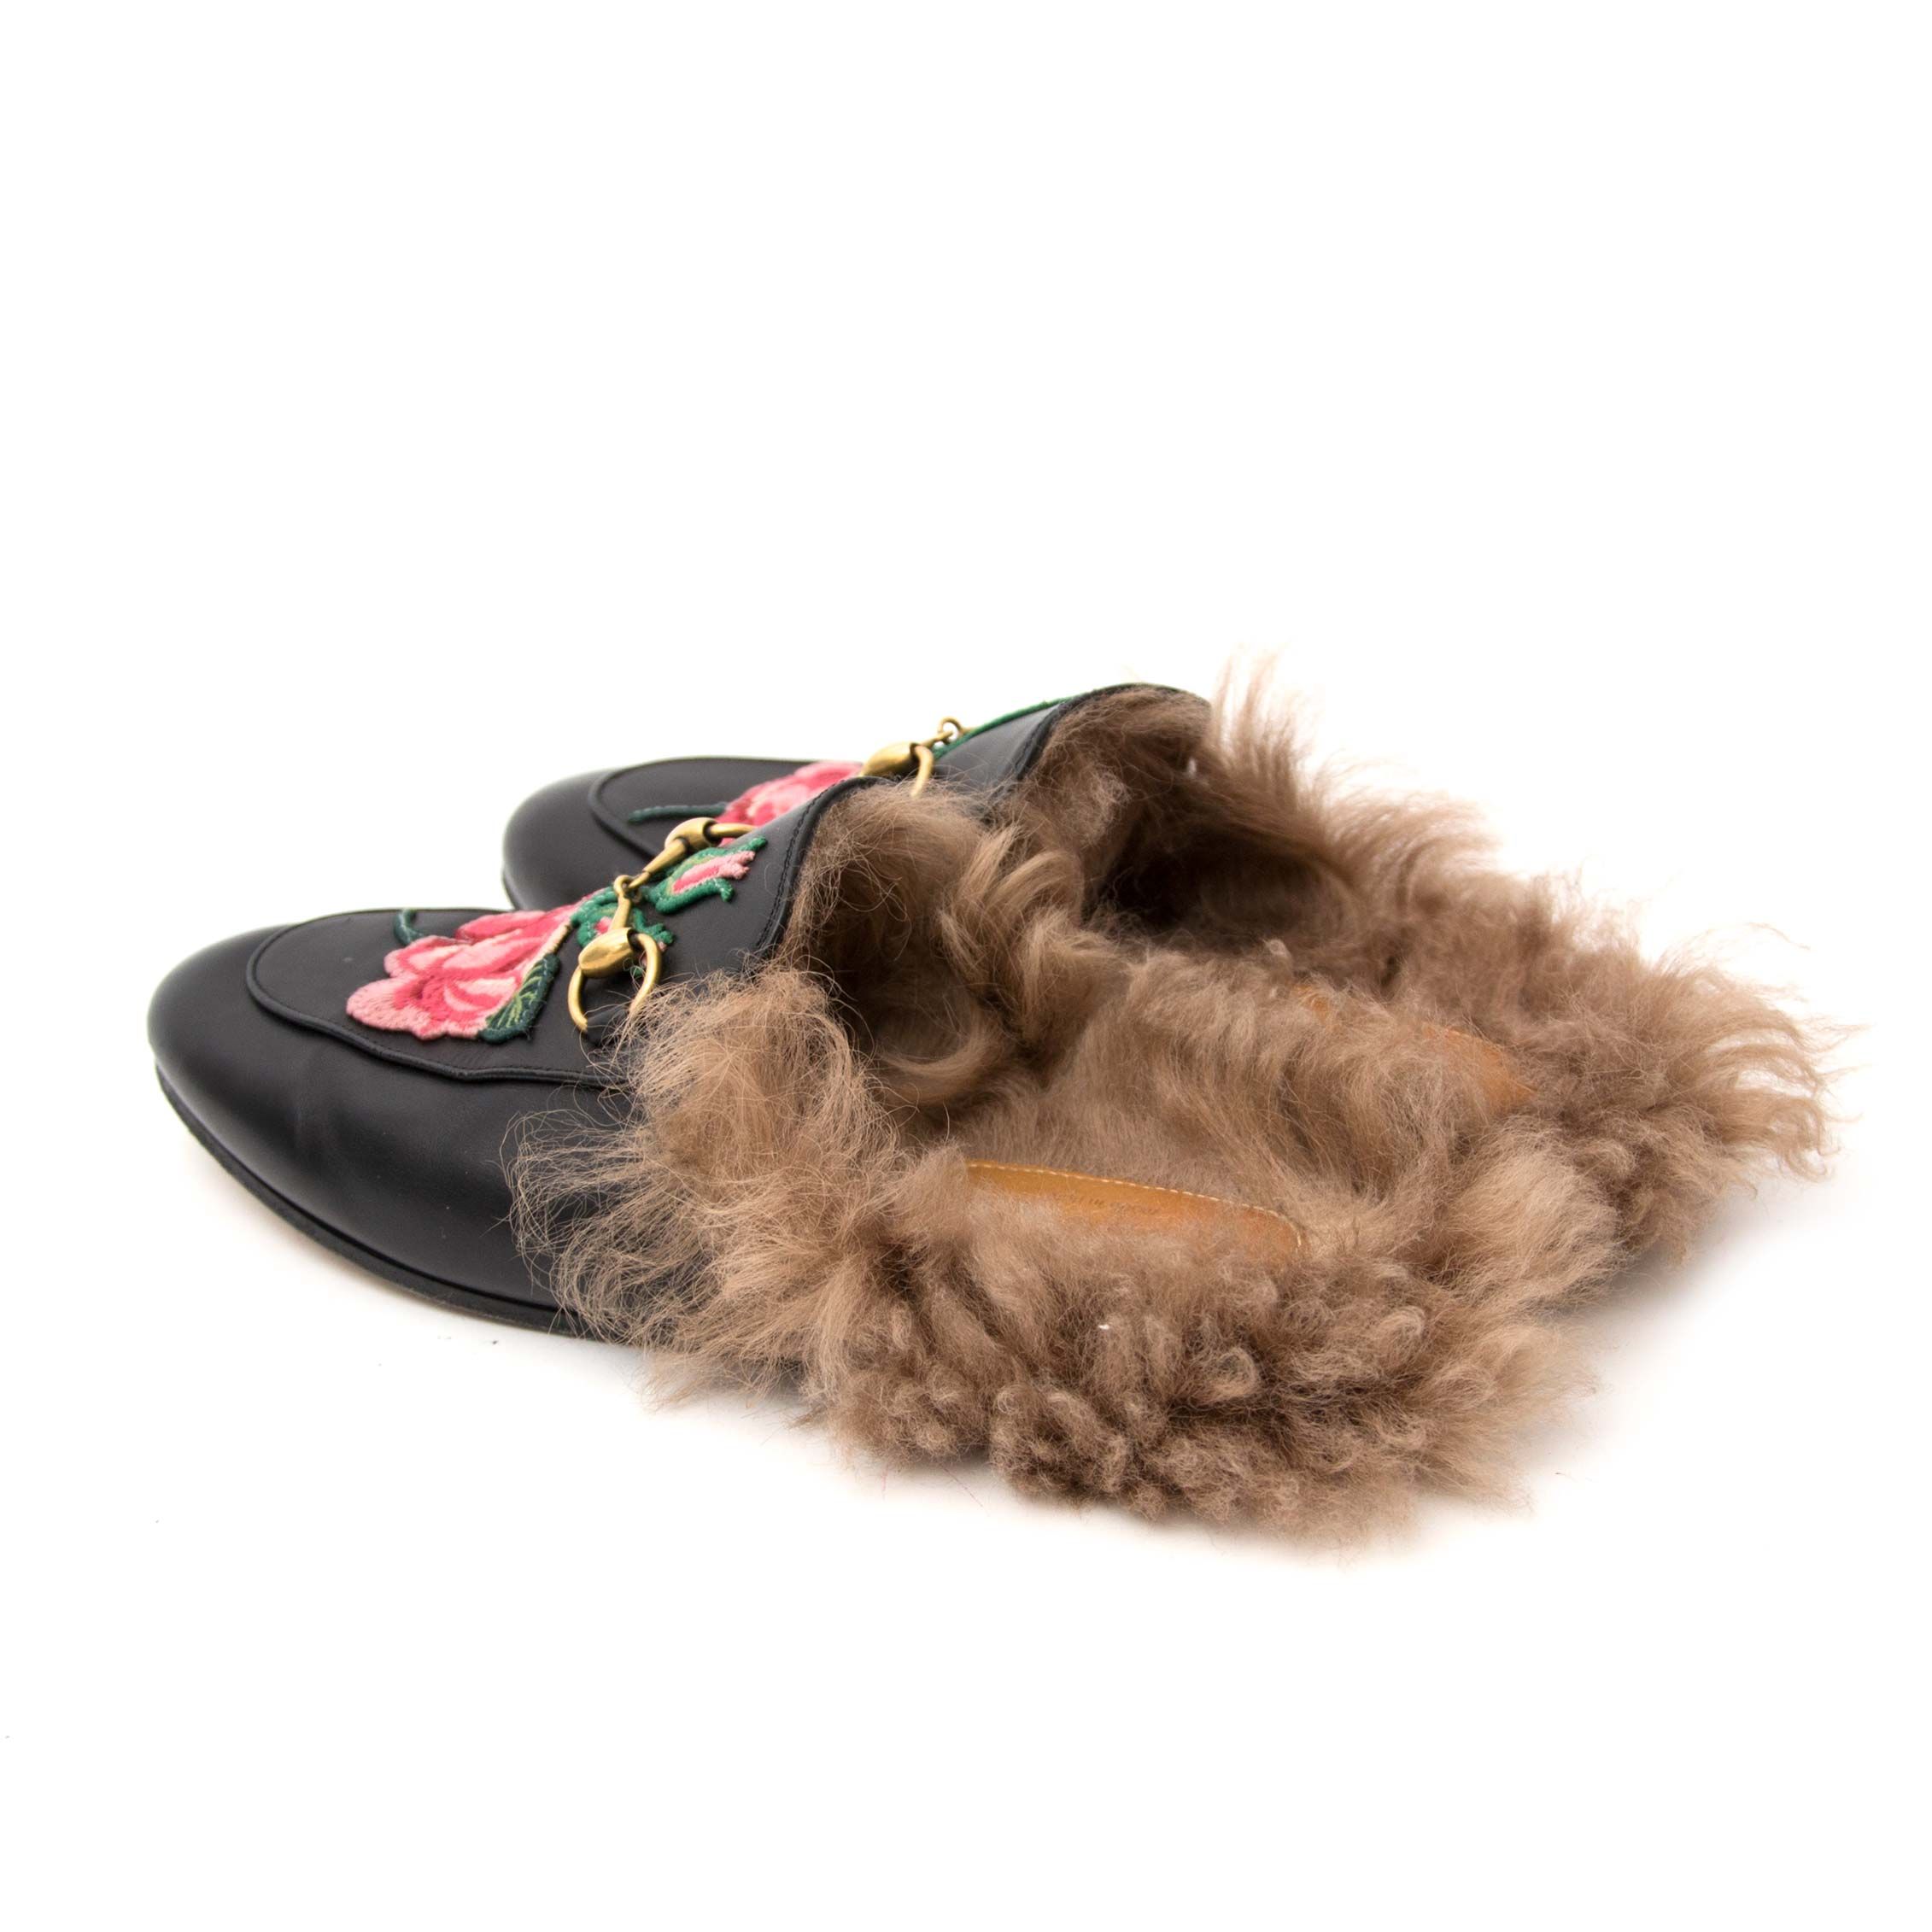 380a9bc1d1ea11 ... Labellov secondhand luxury Koop uw authentieke Gucci Princetown  Embroidered Fur Slide Loafers